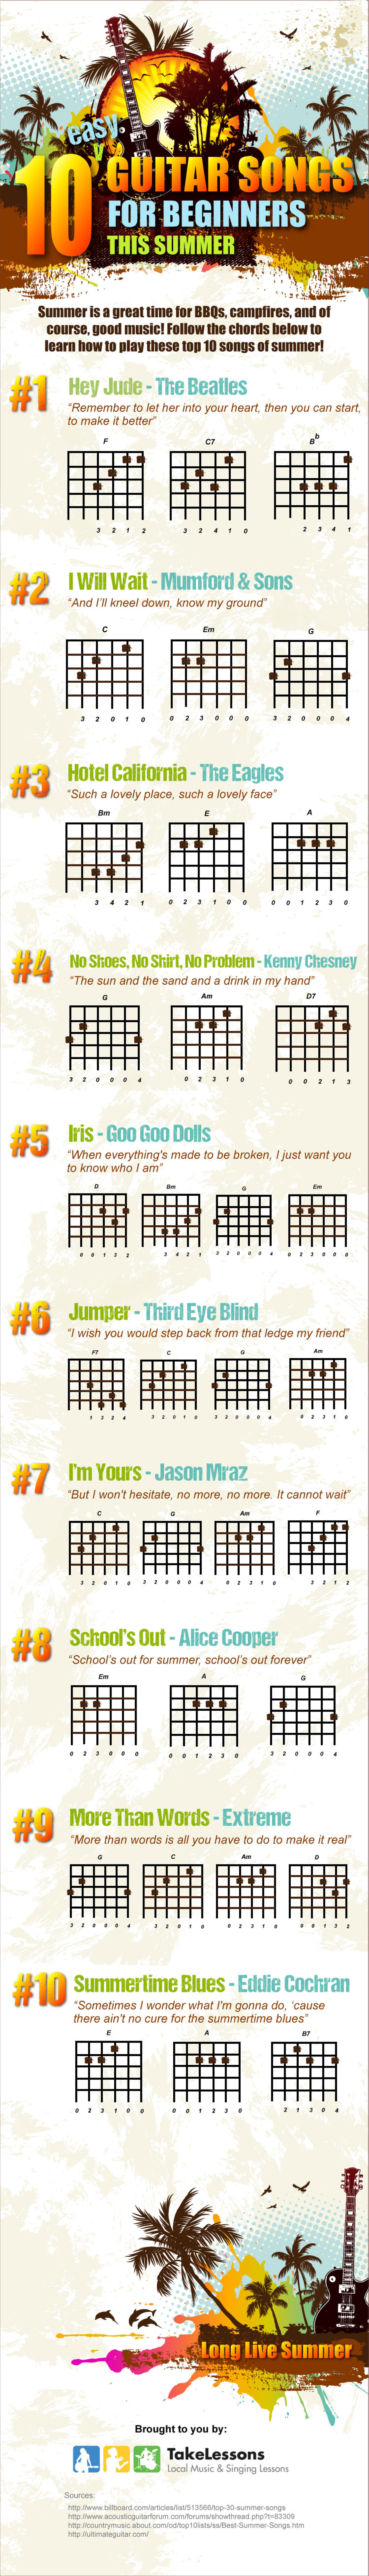 10 guitar songs for beginners. Black Bedroom Furniture Sets. Home Design Ideas